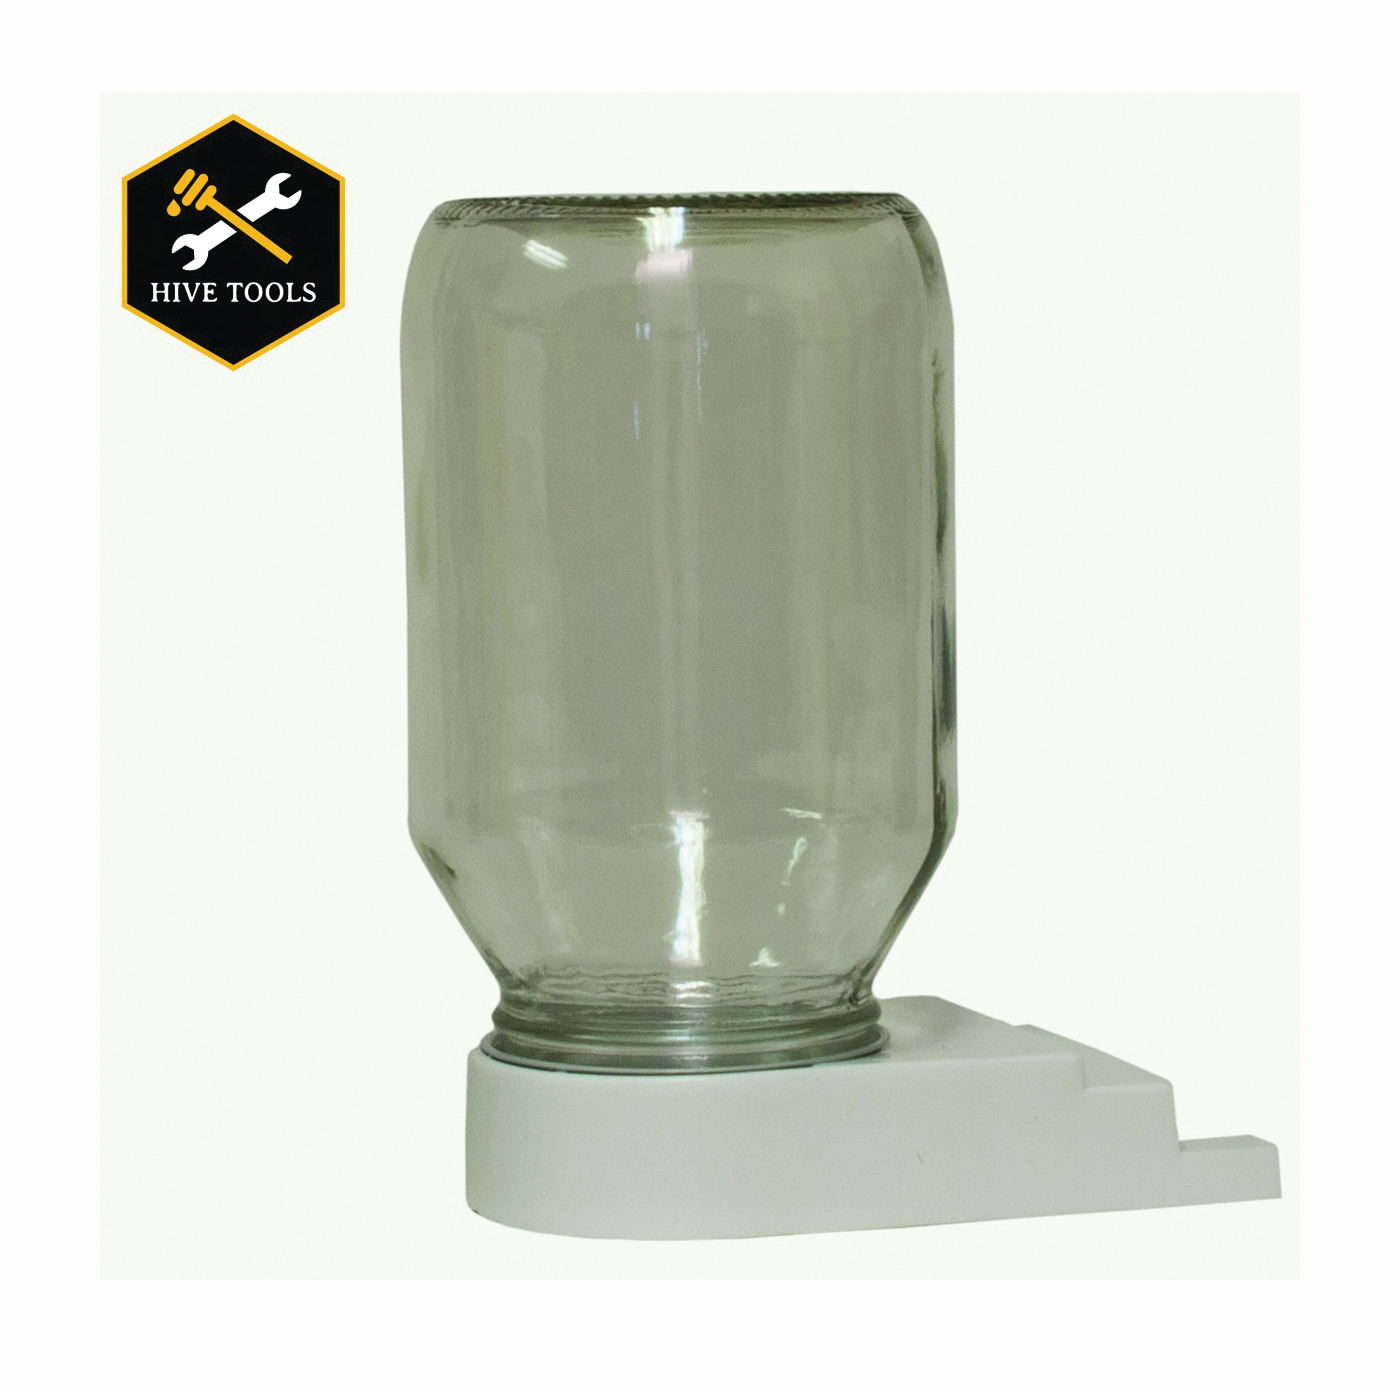 Picture of HARVEST LANE HONEY FEEDBBG-102 Bee Entrance and Feed Distributor, Plastic